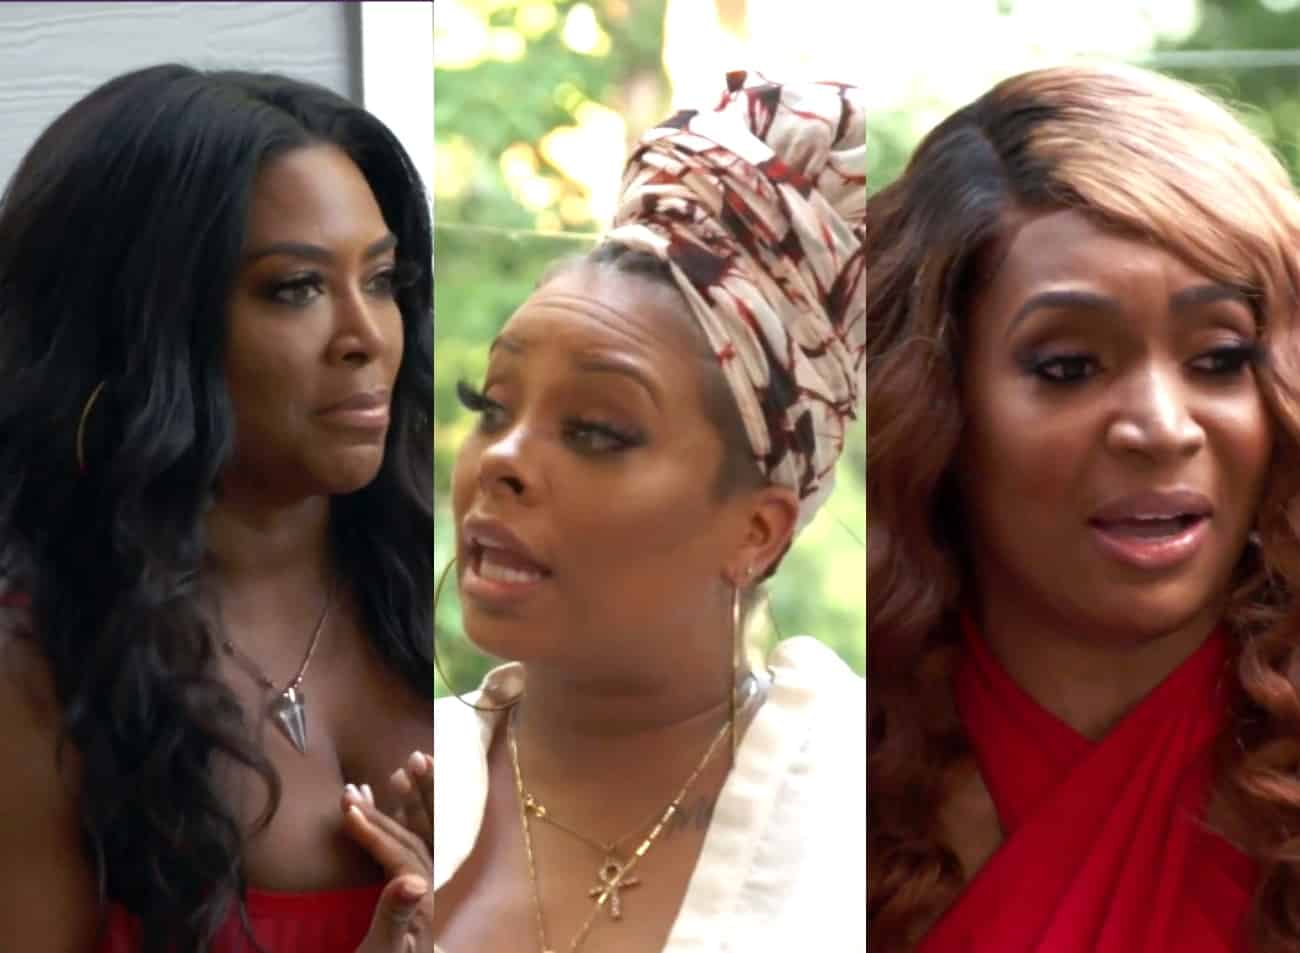 RHOA Recap: Kenya Feuds With Eva and Marlo at Bailey Que! Re-Gifts Eva's Gift to Porsha